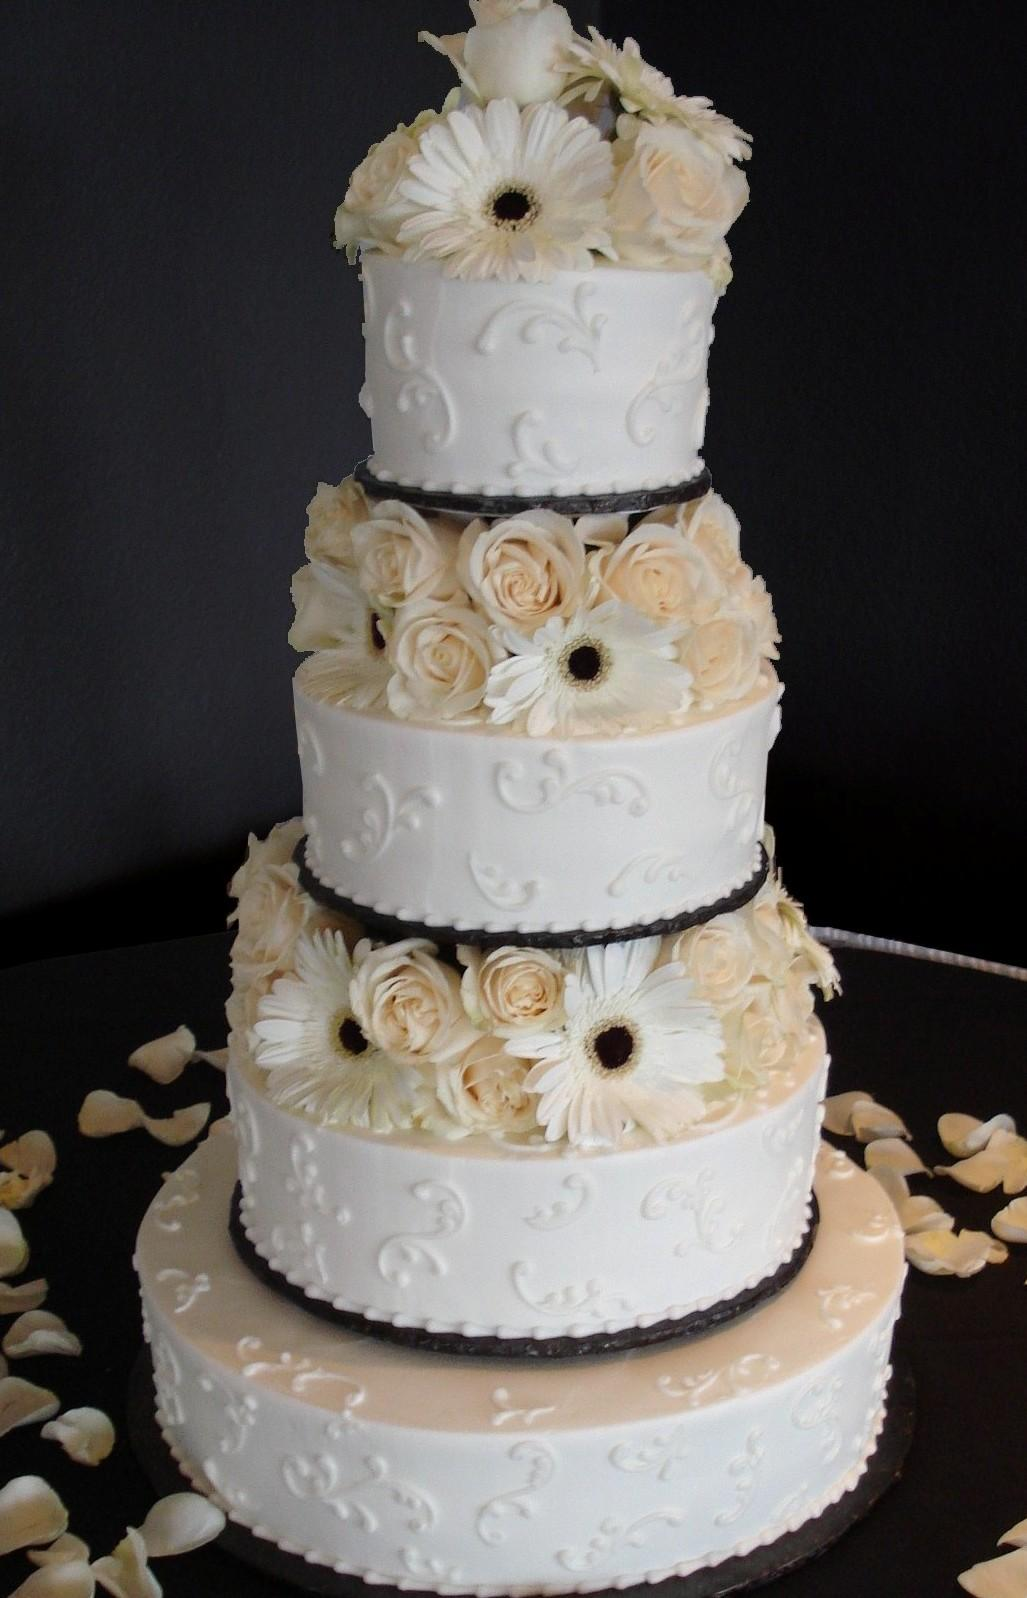 White Ercream Iced 4 Tier Round Wedding Cake Decorated With A Sporadic Scroll Work